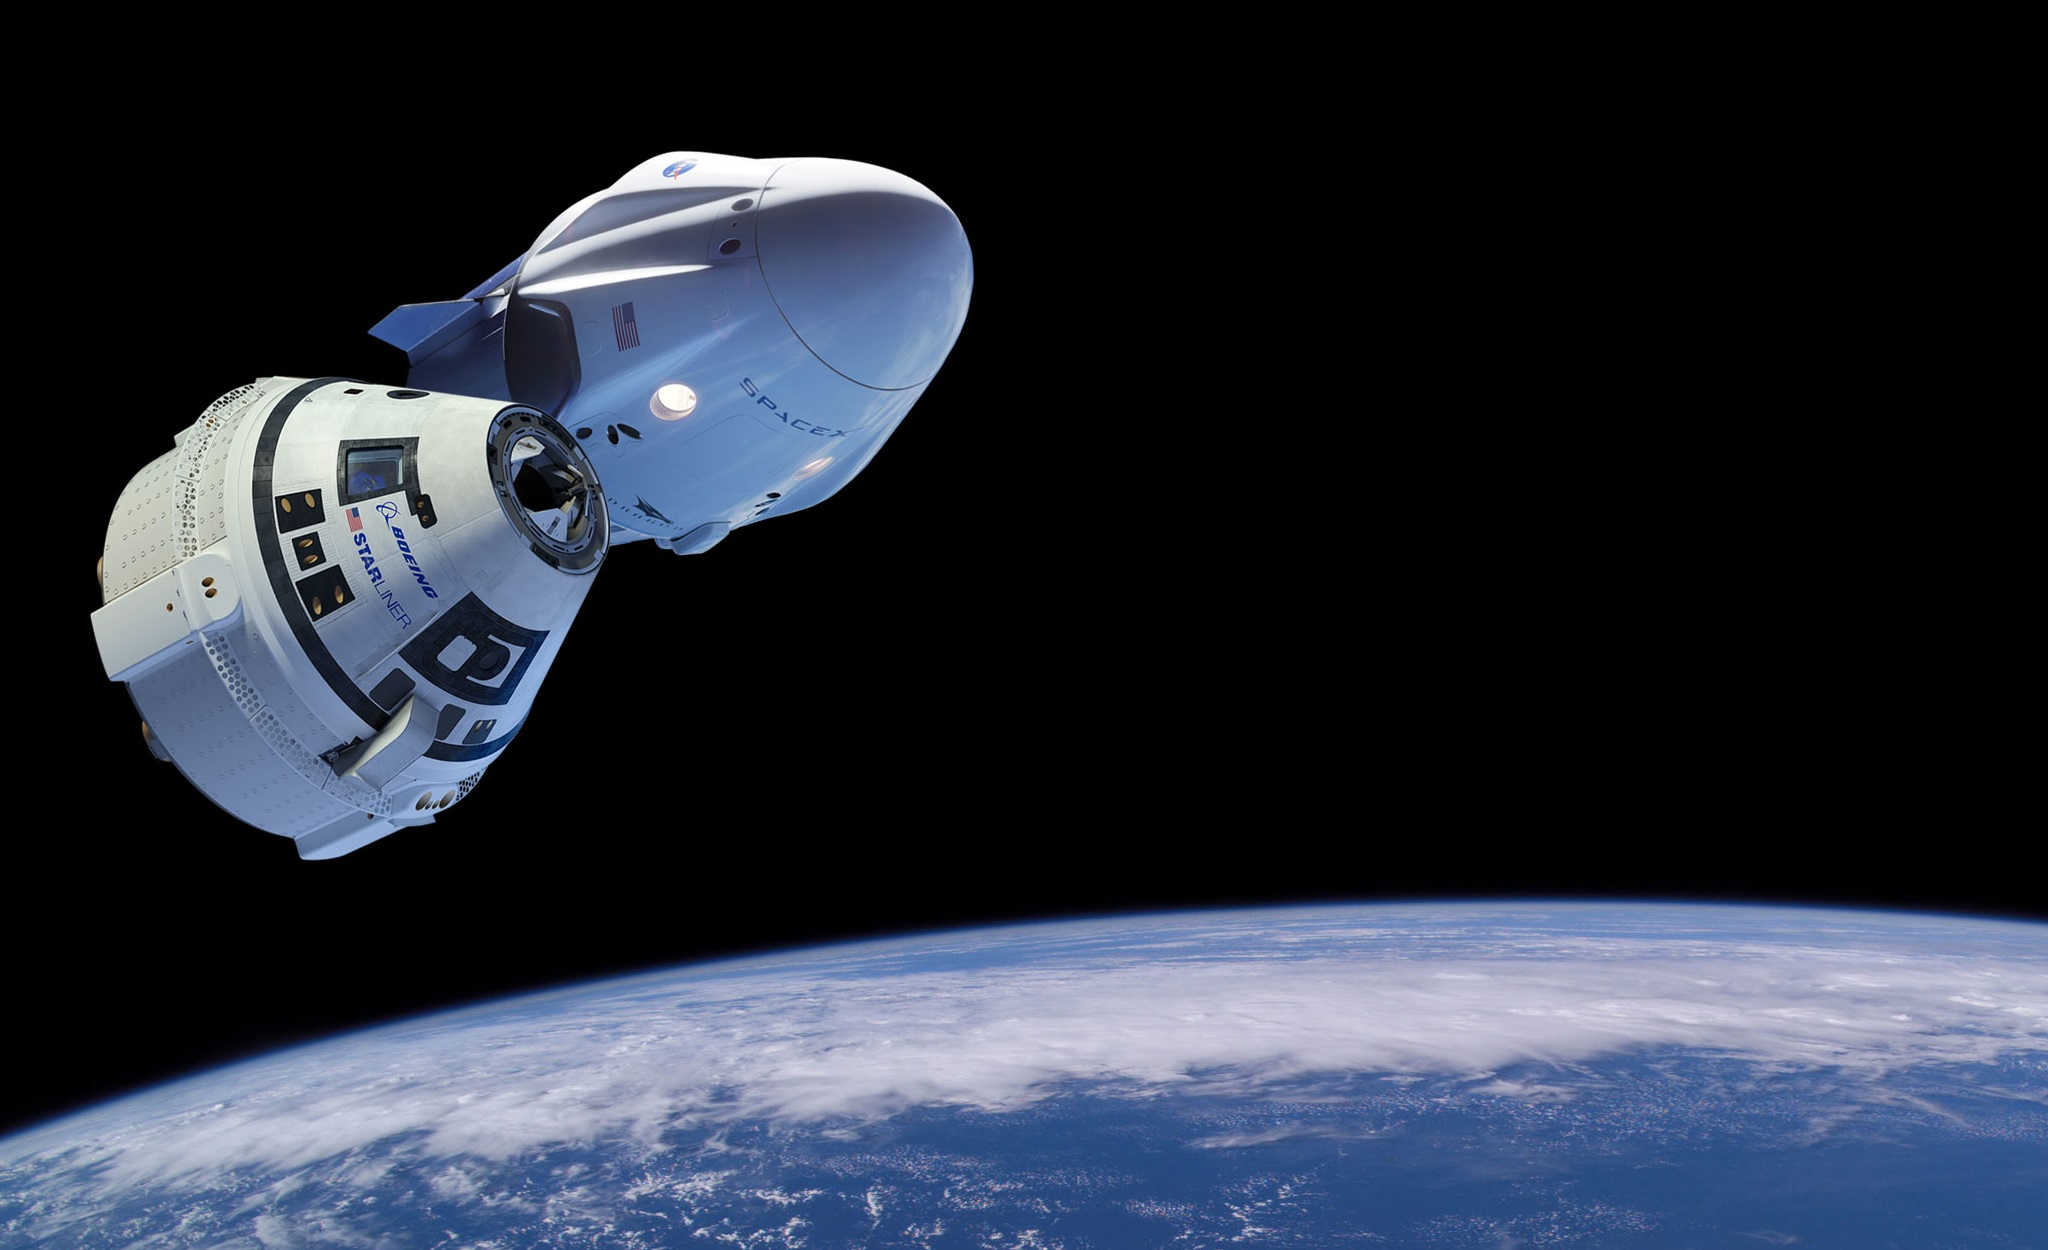 NASA, SpaceX aim for March test of 1st new astronaut capsule